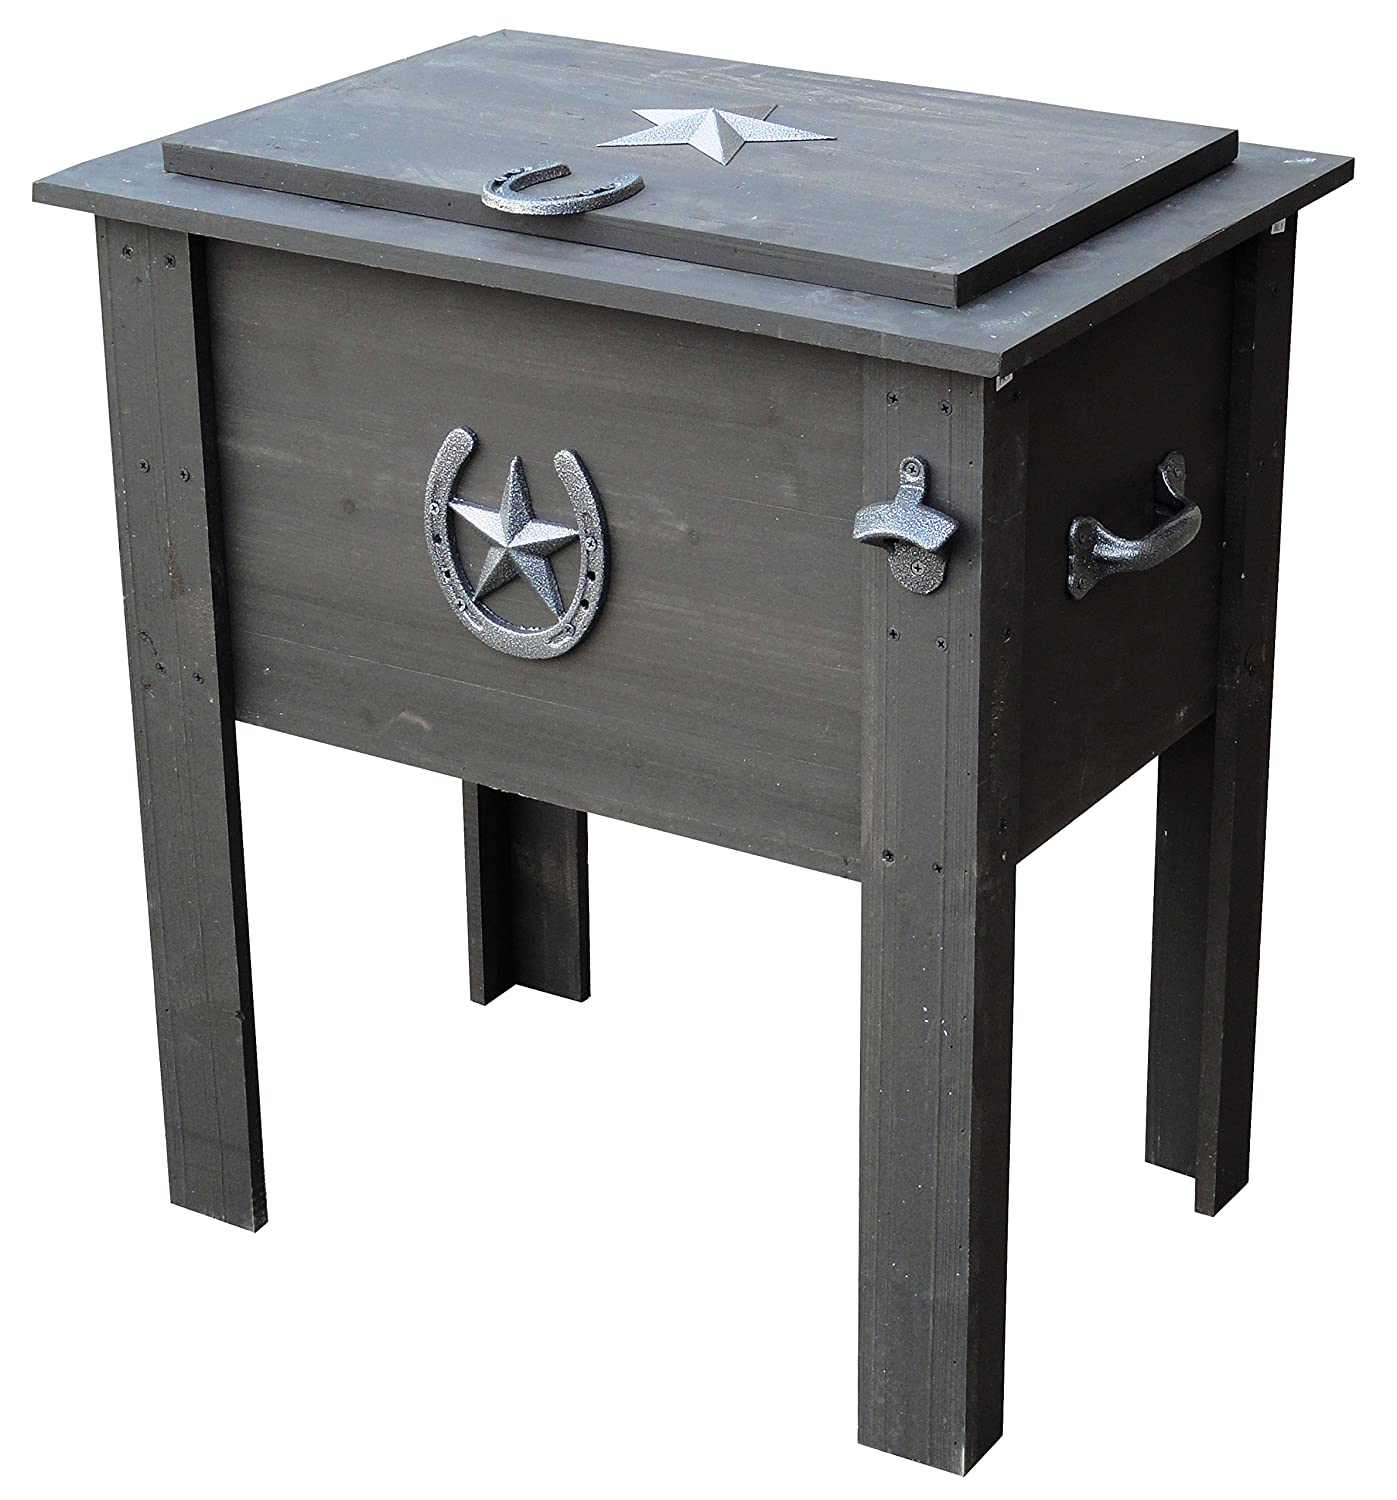 Delightful Amazon.com : Leigh Country TX 93728 Cooler With Grey Wash Stain On Pine  Wood, 54 Quart : Garden U0026 Outdoor